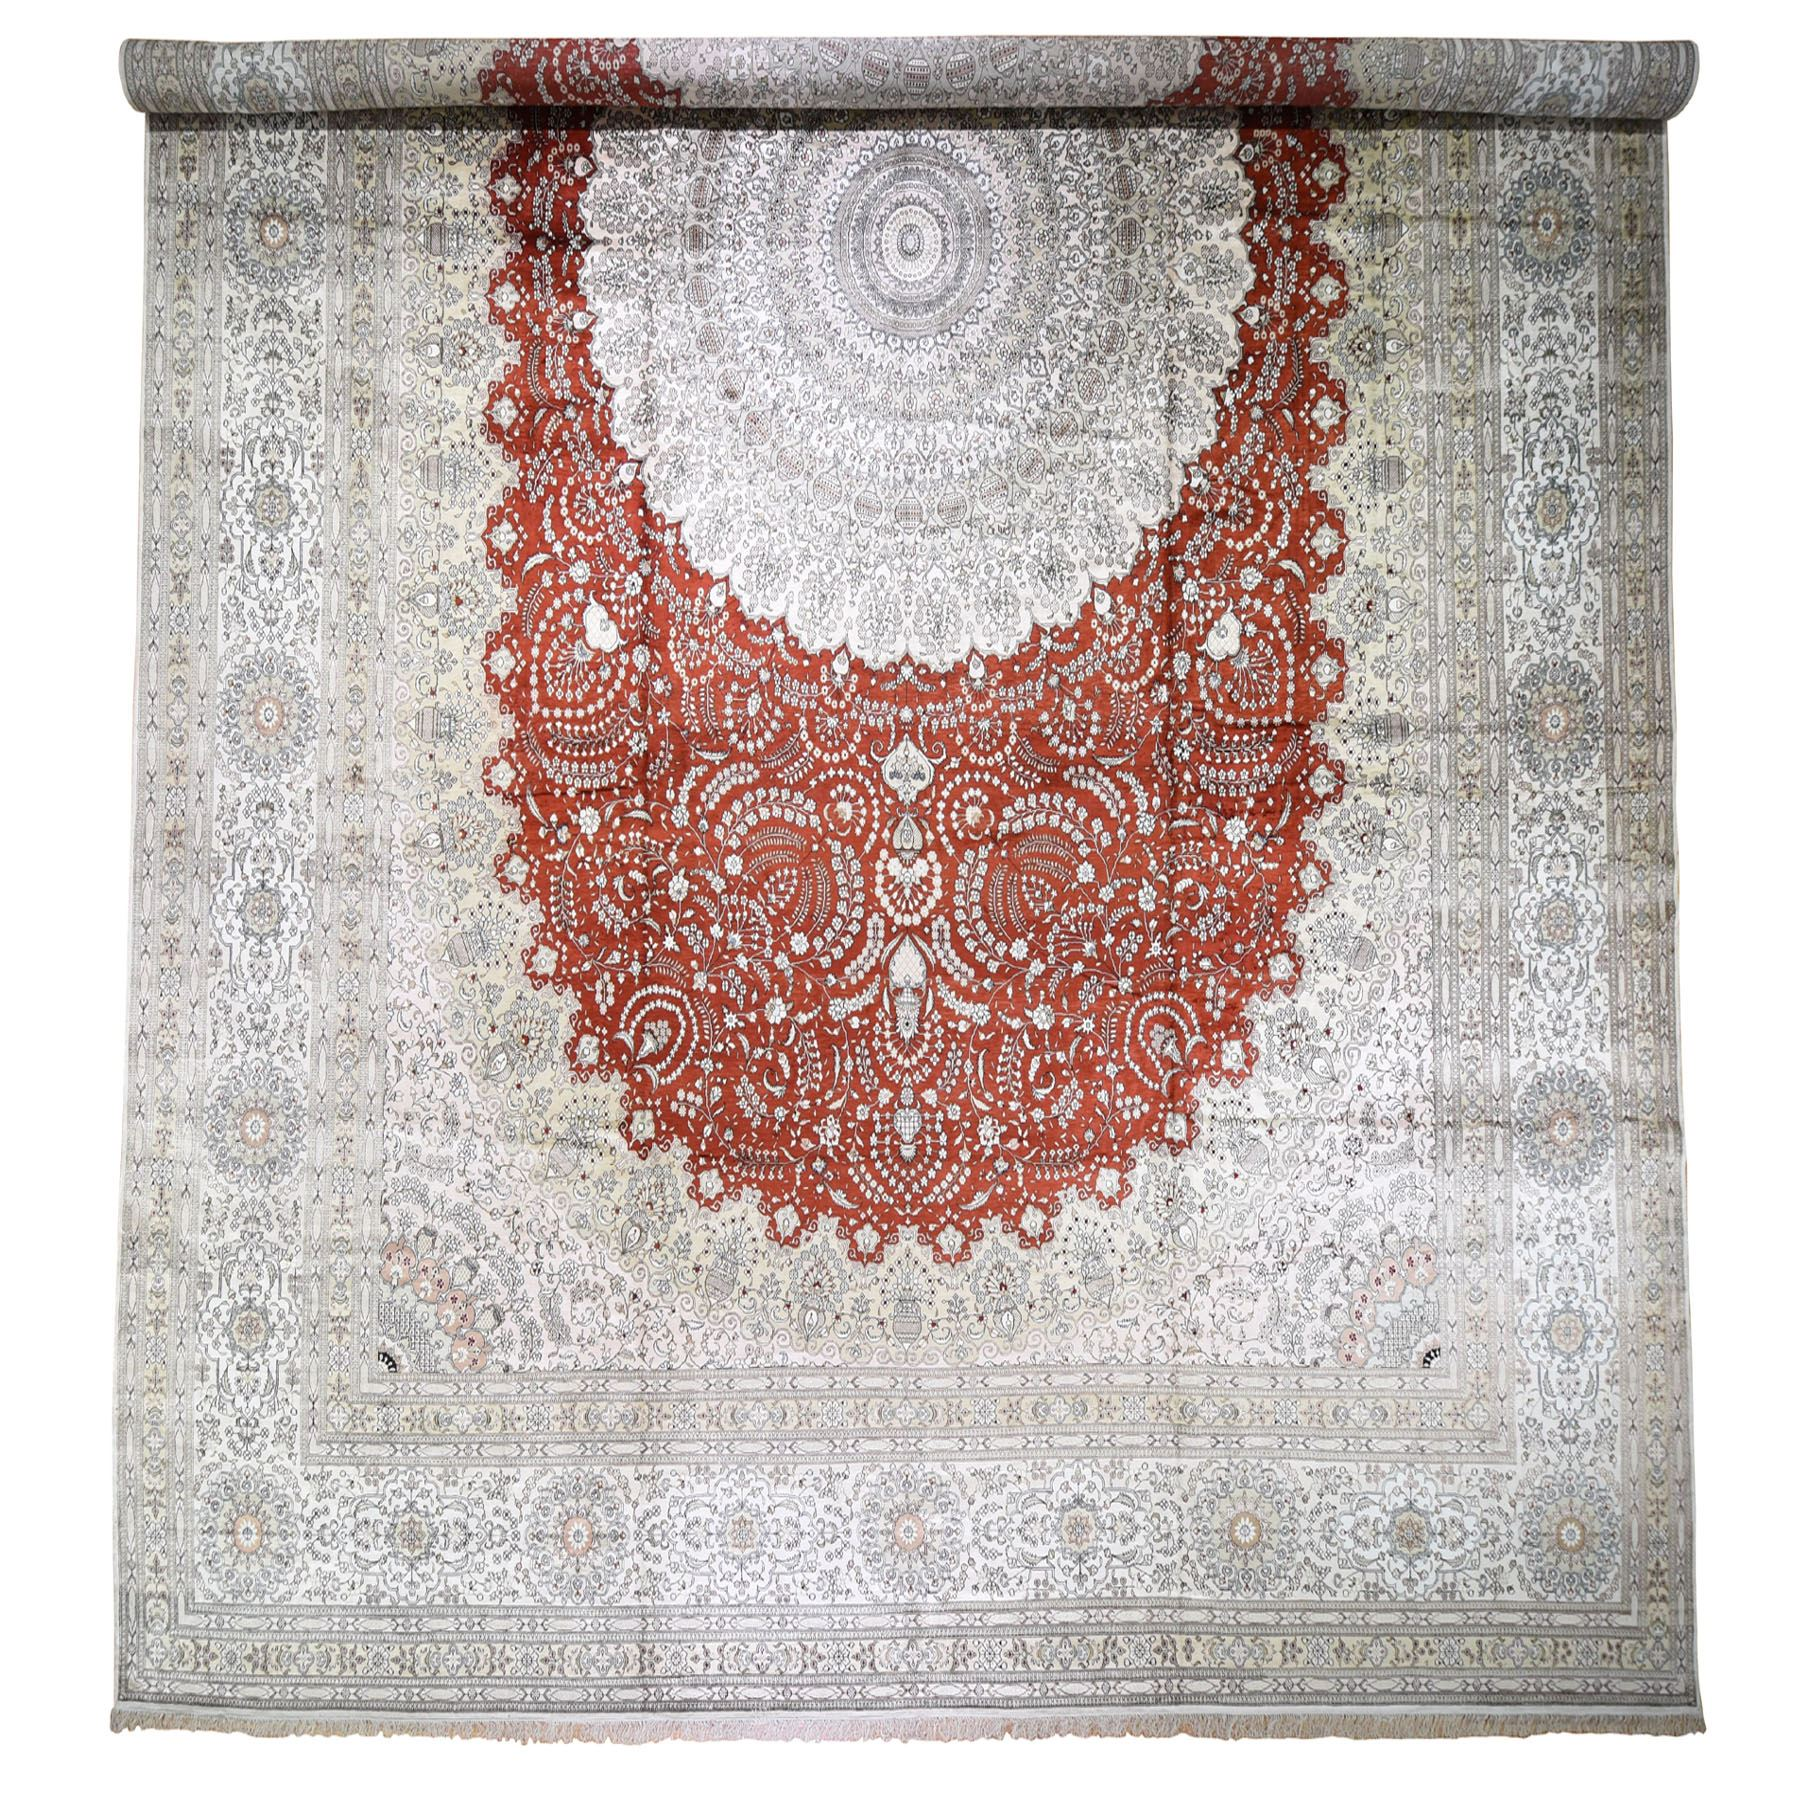 Pirniakan Collection Hand Knotted Red Rug No: 0193844